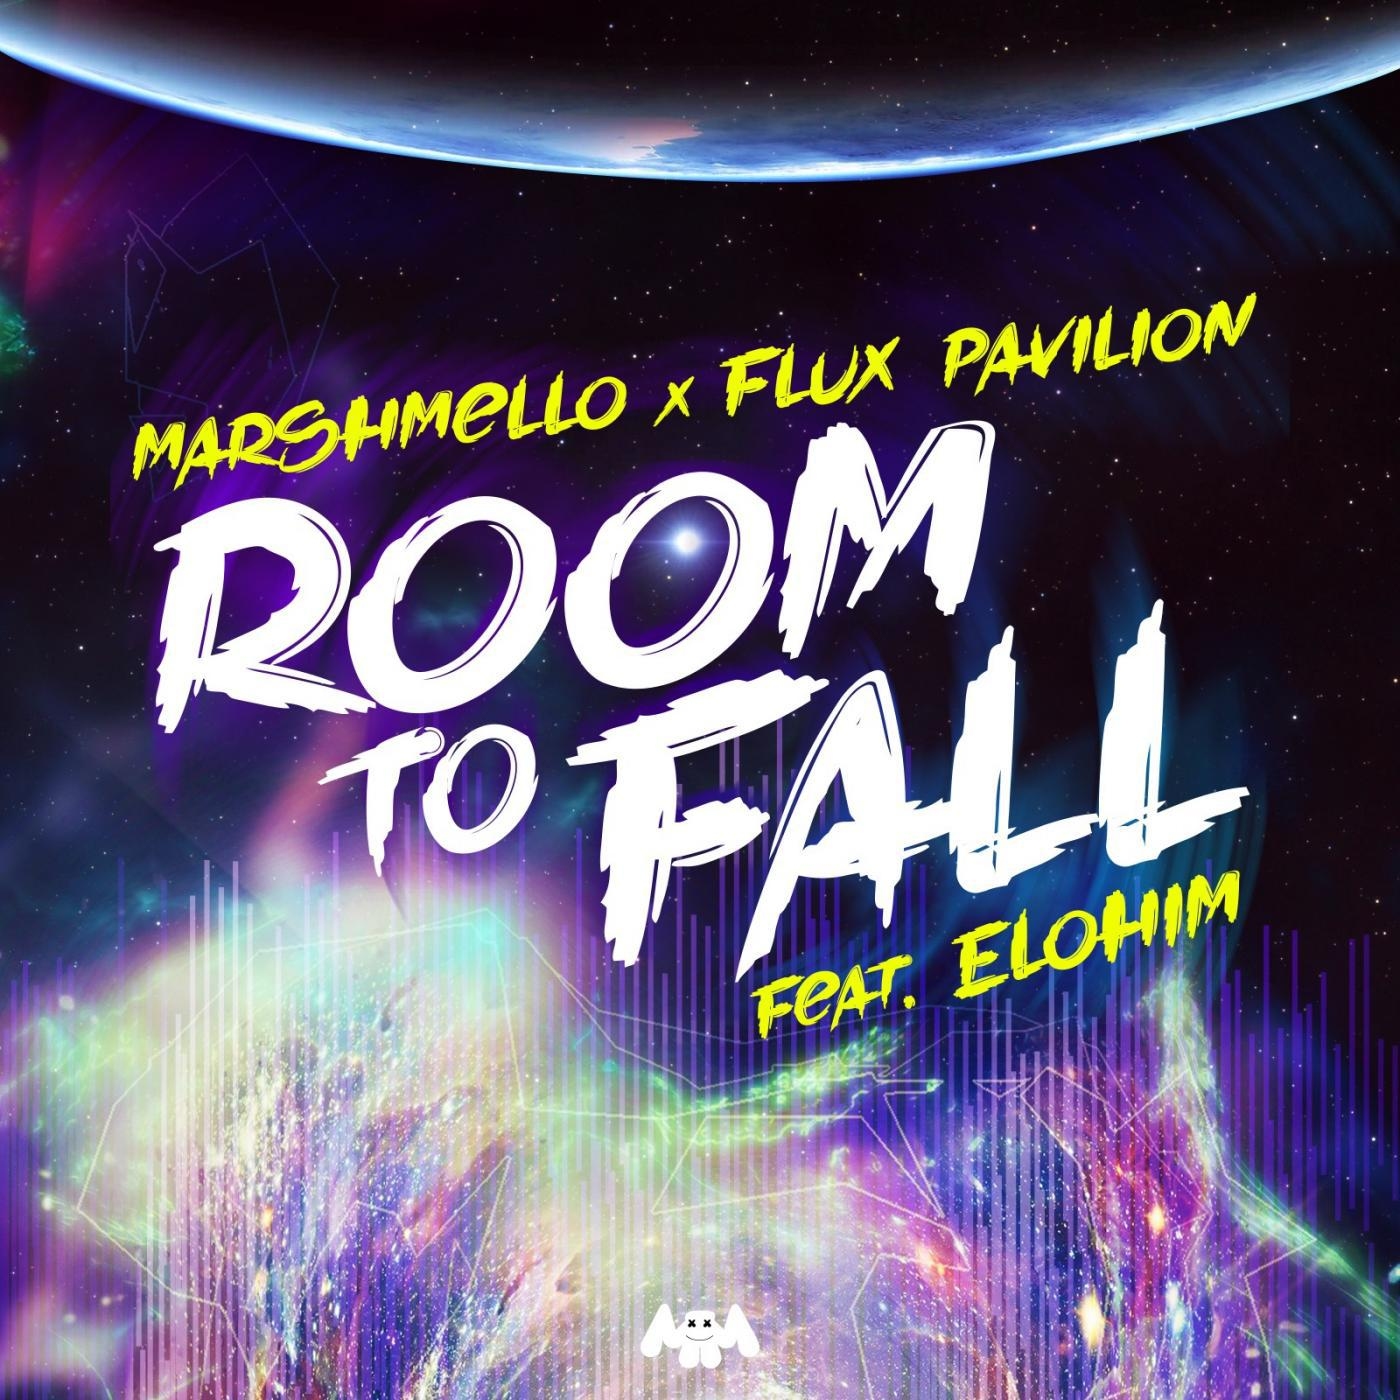 Room to Fall